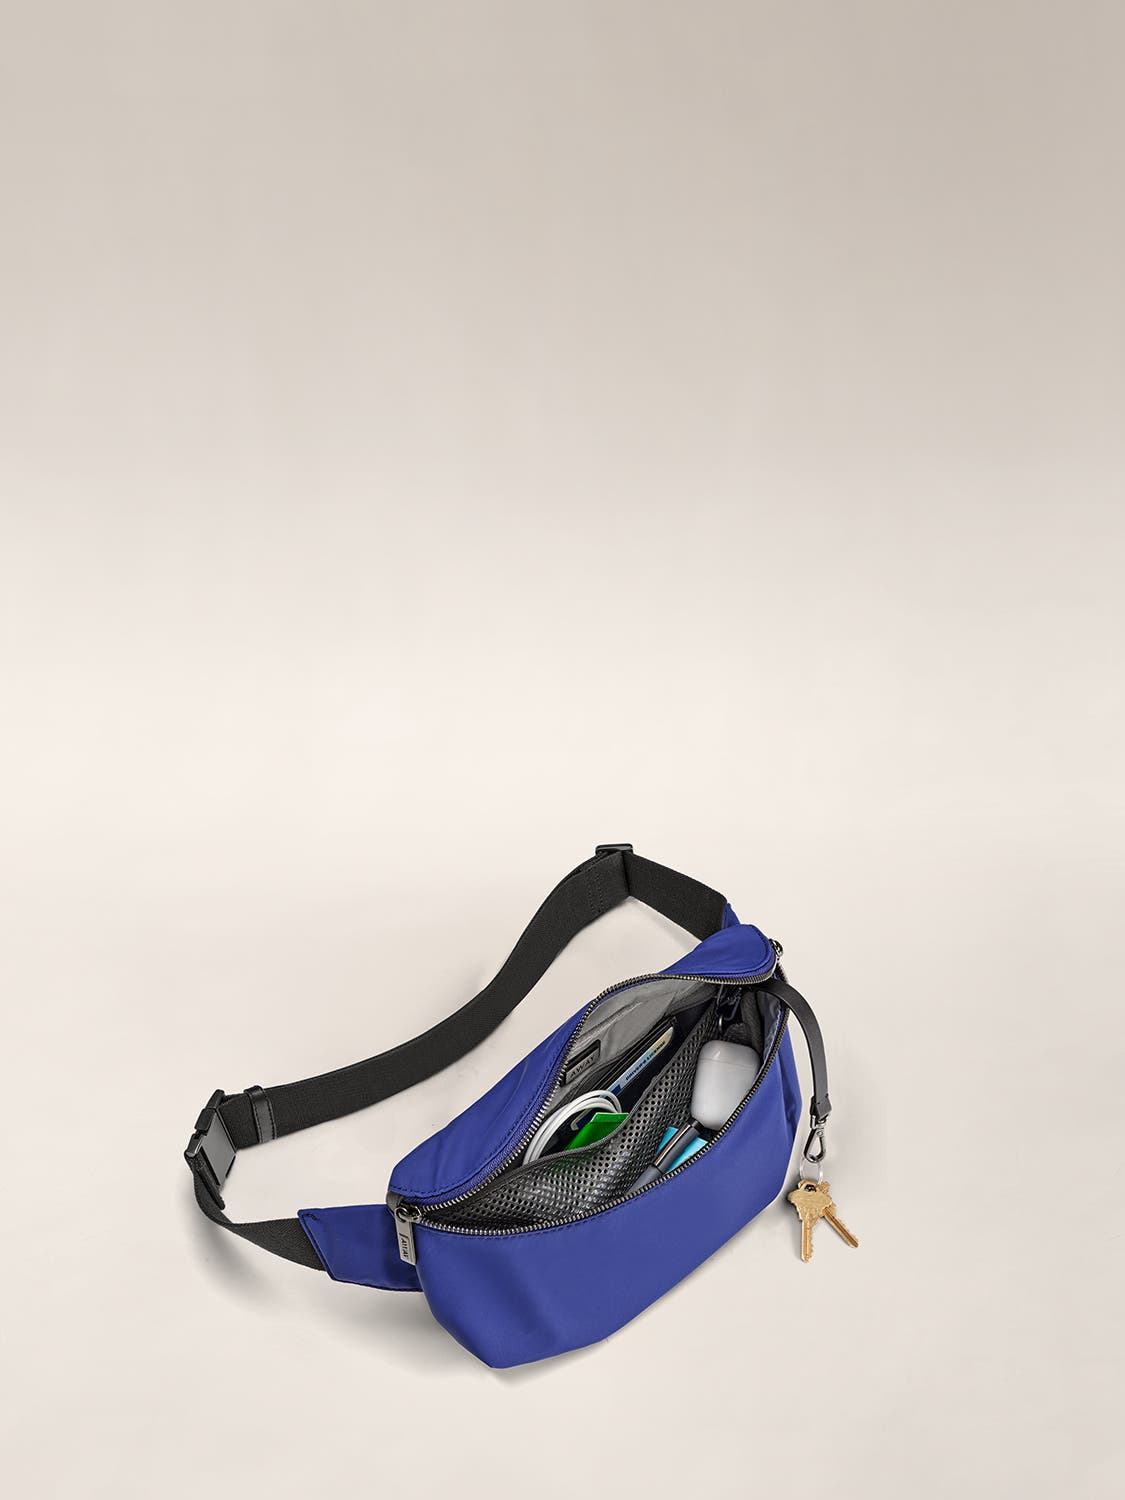 Open view of a cobalt fanny pack with wire cable, pen and more organized in internal pockets.